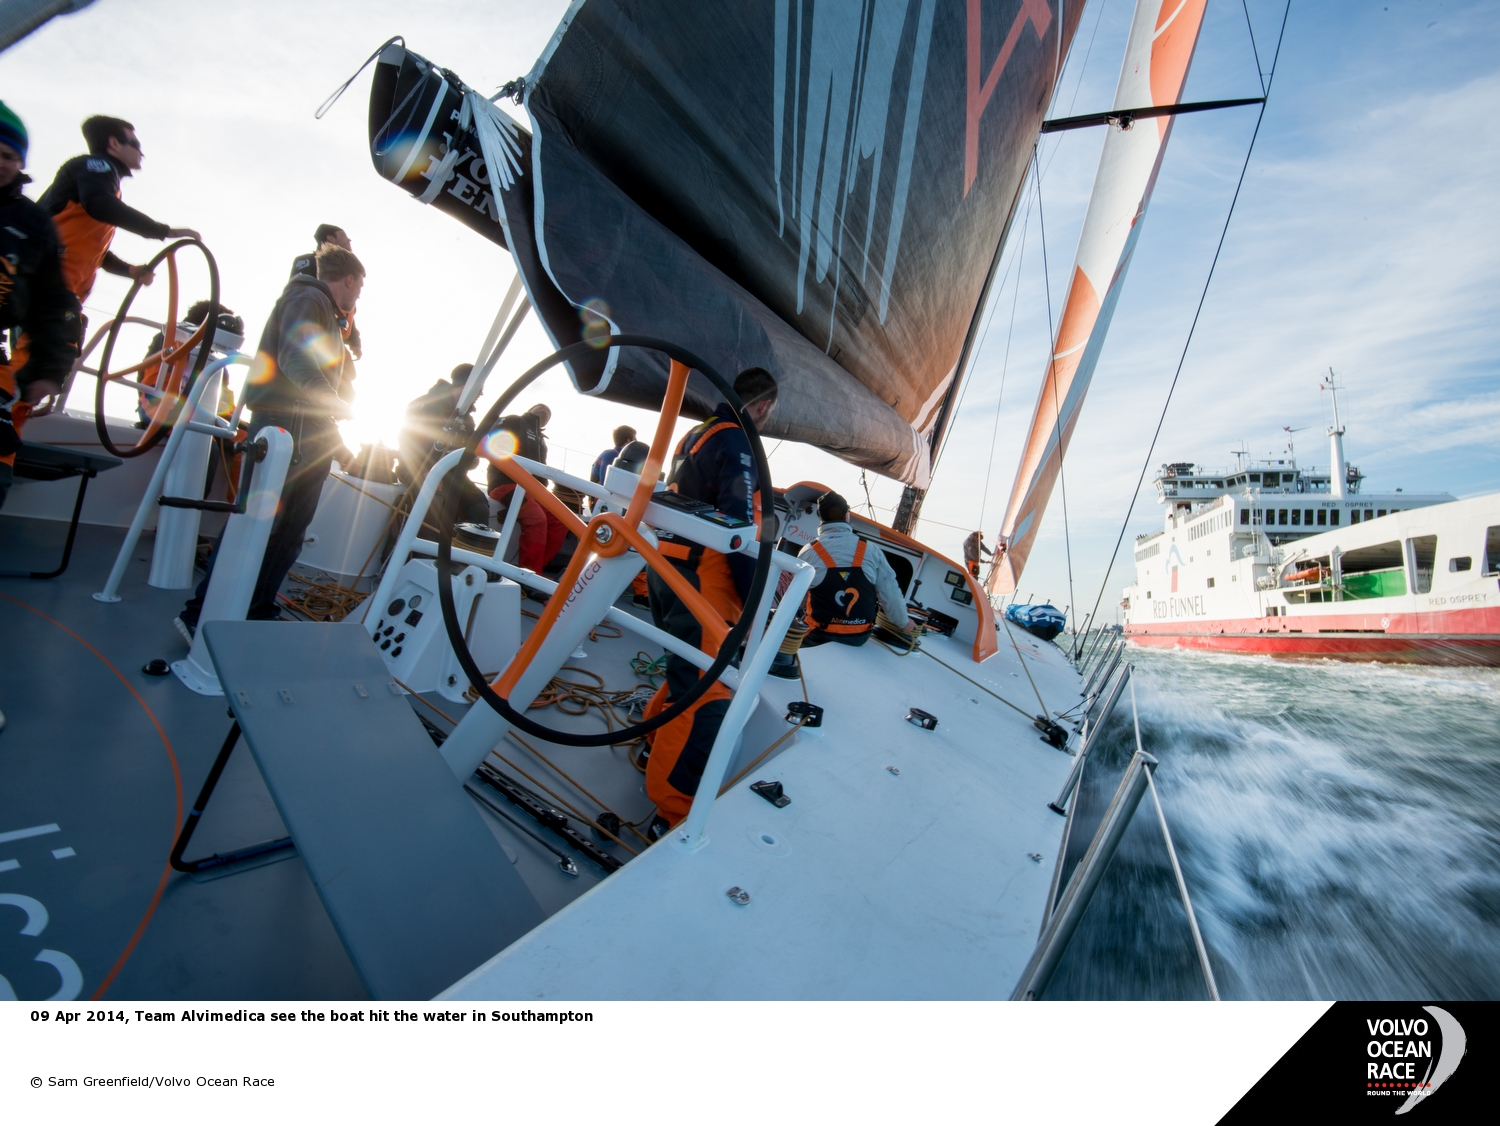 Photo by Sam Greenfield / Volvo Ocean Race